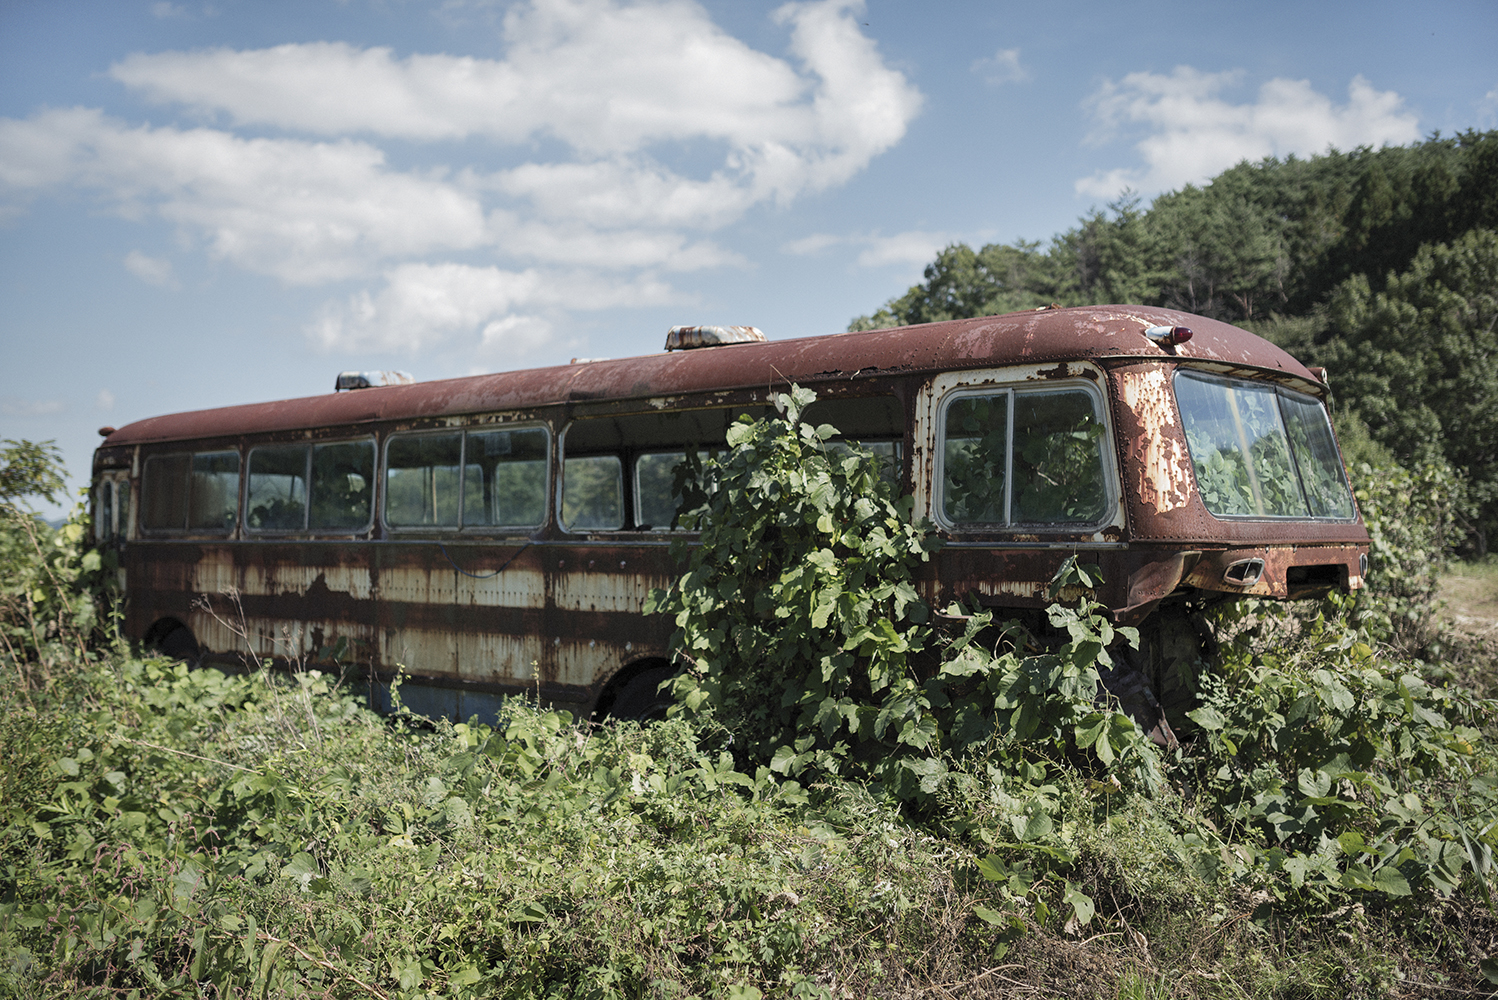 Iitate, Fukushima prefecture.Abandoned bus outside former resident of Iitate Toru Anzai's house in Fukushima prefecture. The house, which is approximately 32 km northwest of the Fukushima Daiichi nuclear plant, was heavily exposed to radioactive fallout in March 2011. The Government lifted evacuation orders for a part of Iitate in March 2017 despite radiation readings that mean it is not safe for people to return to Iitate. As of December 2017, the population of Iitate was 505, 7.7% of the population in March 2011. Greenpeace has been conducting radiation surveys in Iitate since March 2011, when it was the first to warn of the high levels of radiation and the urgent need to evacuate.